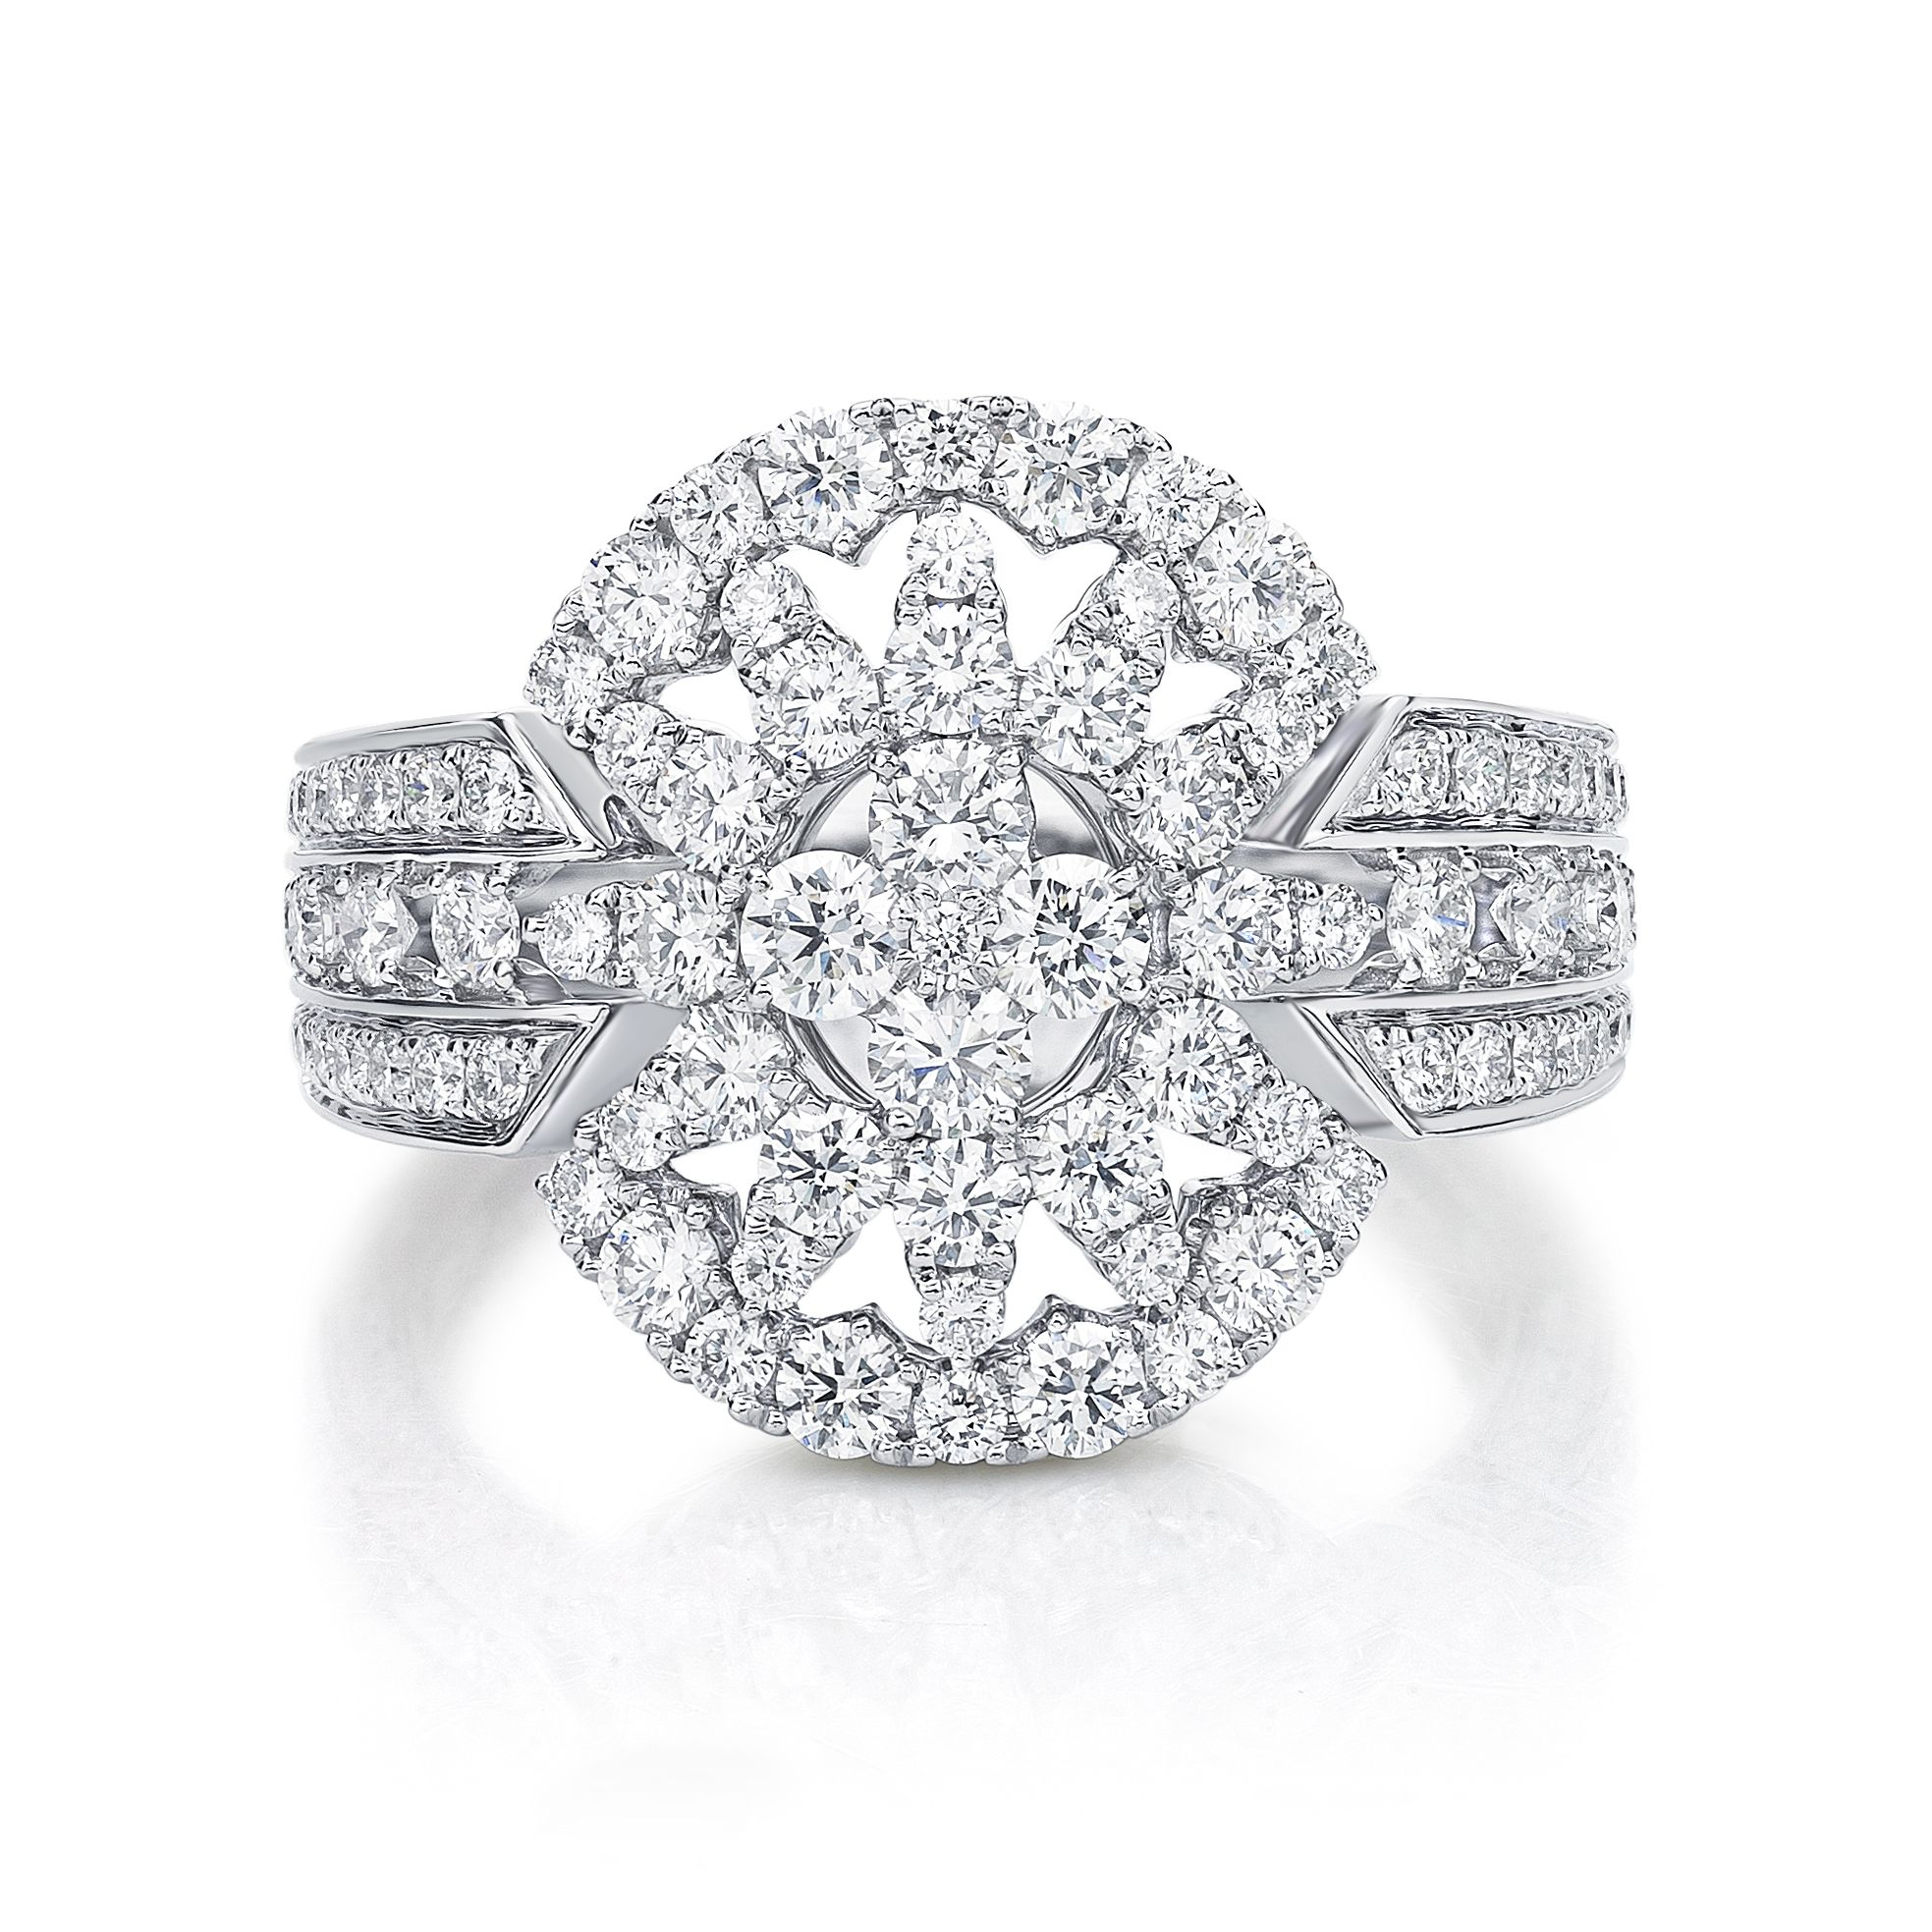 Stunning vintage style diamond dress ring by Diamonds